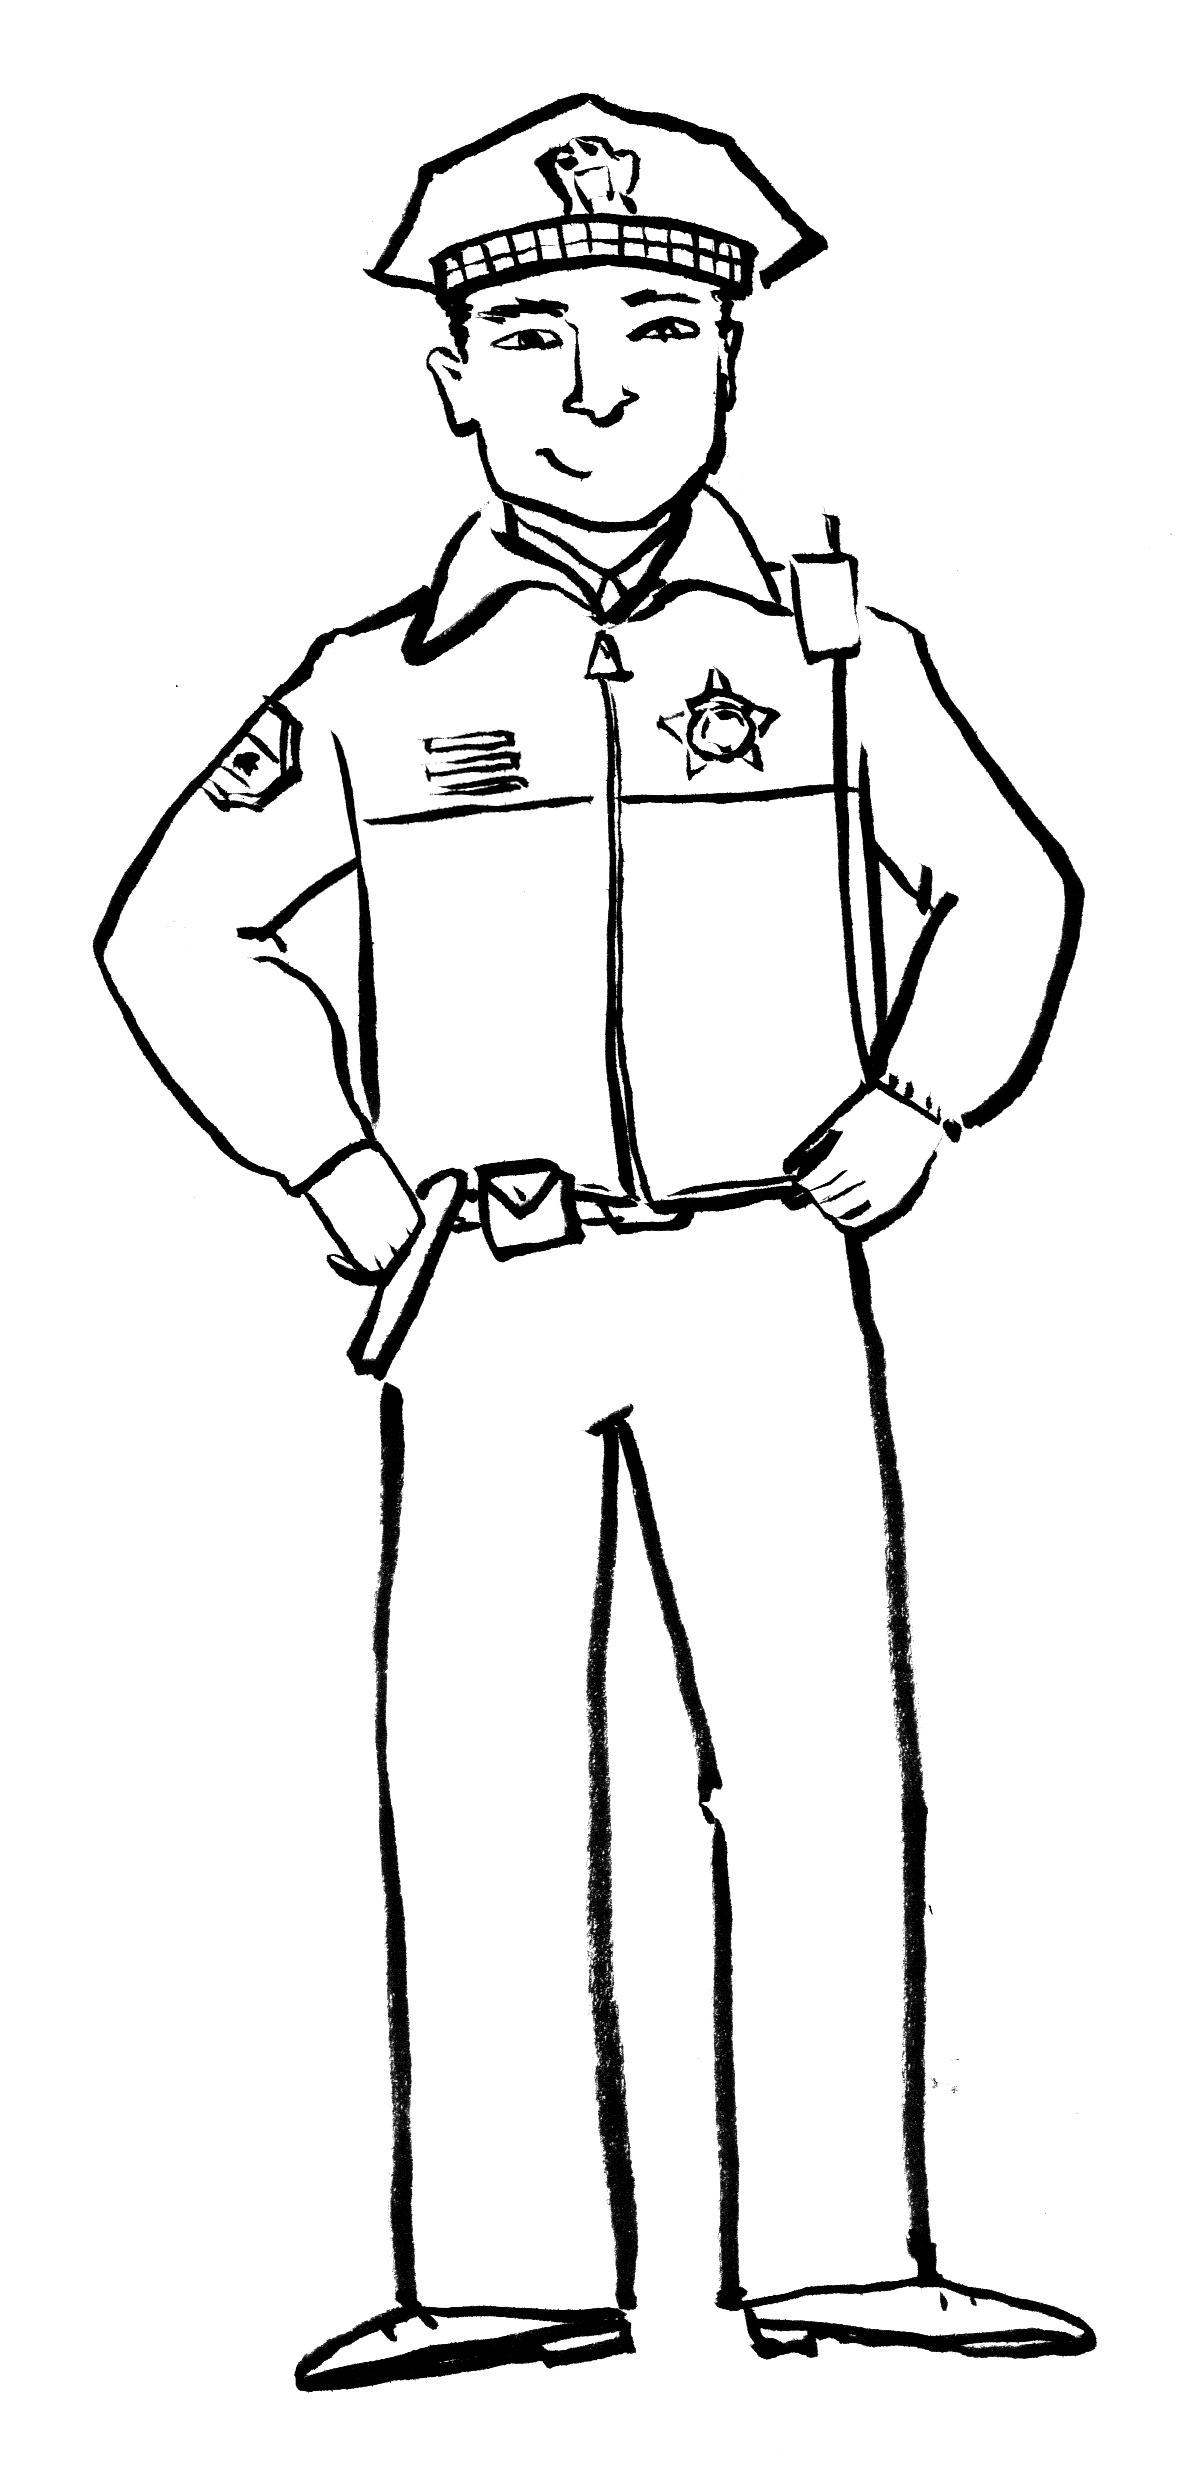 coloring pages of police officer - photo#15